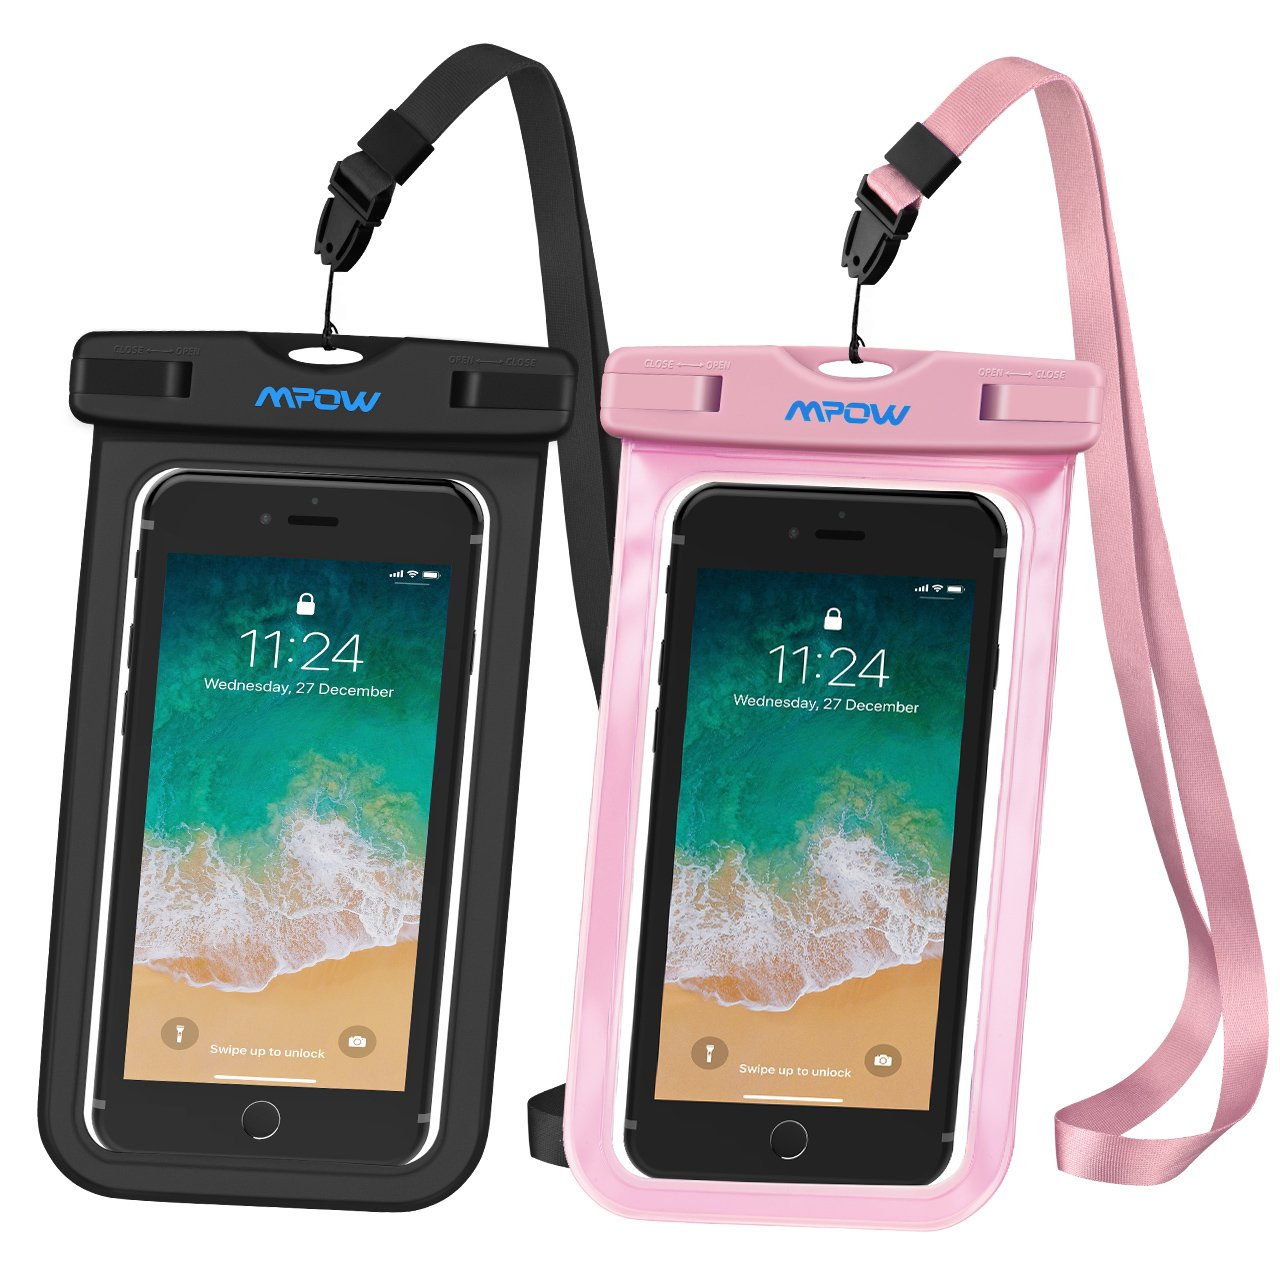 Mpow Universal Waterproof Case, IPX8 Waterproof Phone Pouch Dry Bag Compatible for iPhone Xs Max/Xs/Xr/X/8/8plus/7/7plus/6s/6/6s Plus Galaxy s9/s8/s7 Google Pixel HTC12 (Black+Pink 2-Pack) by Mpow (Image #8)